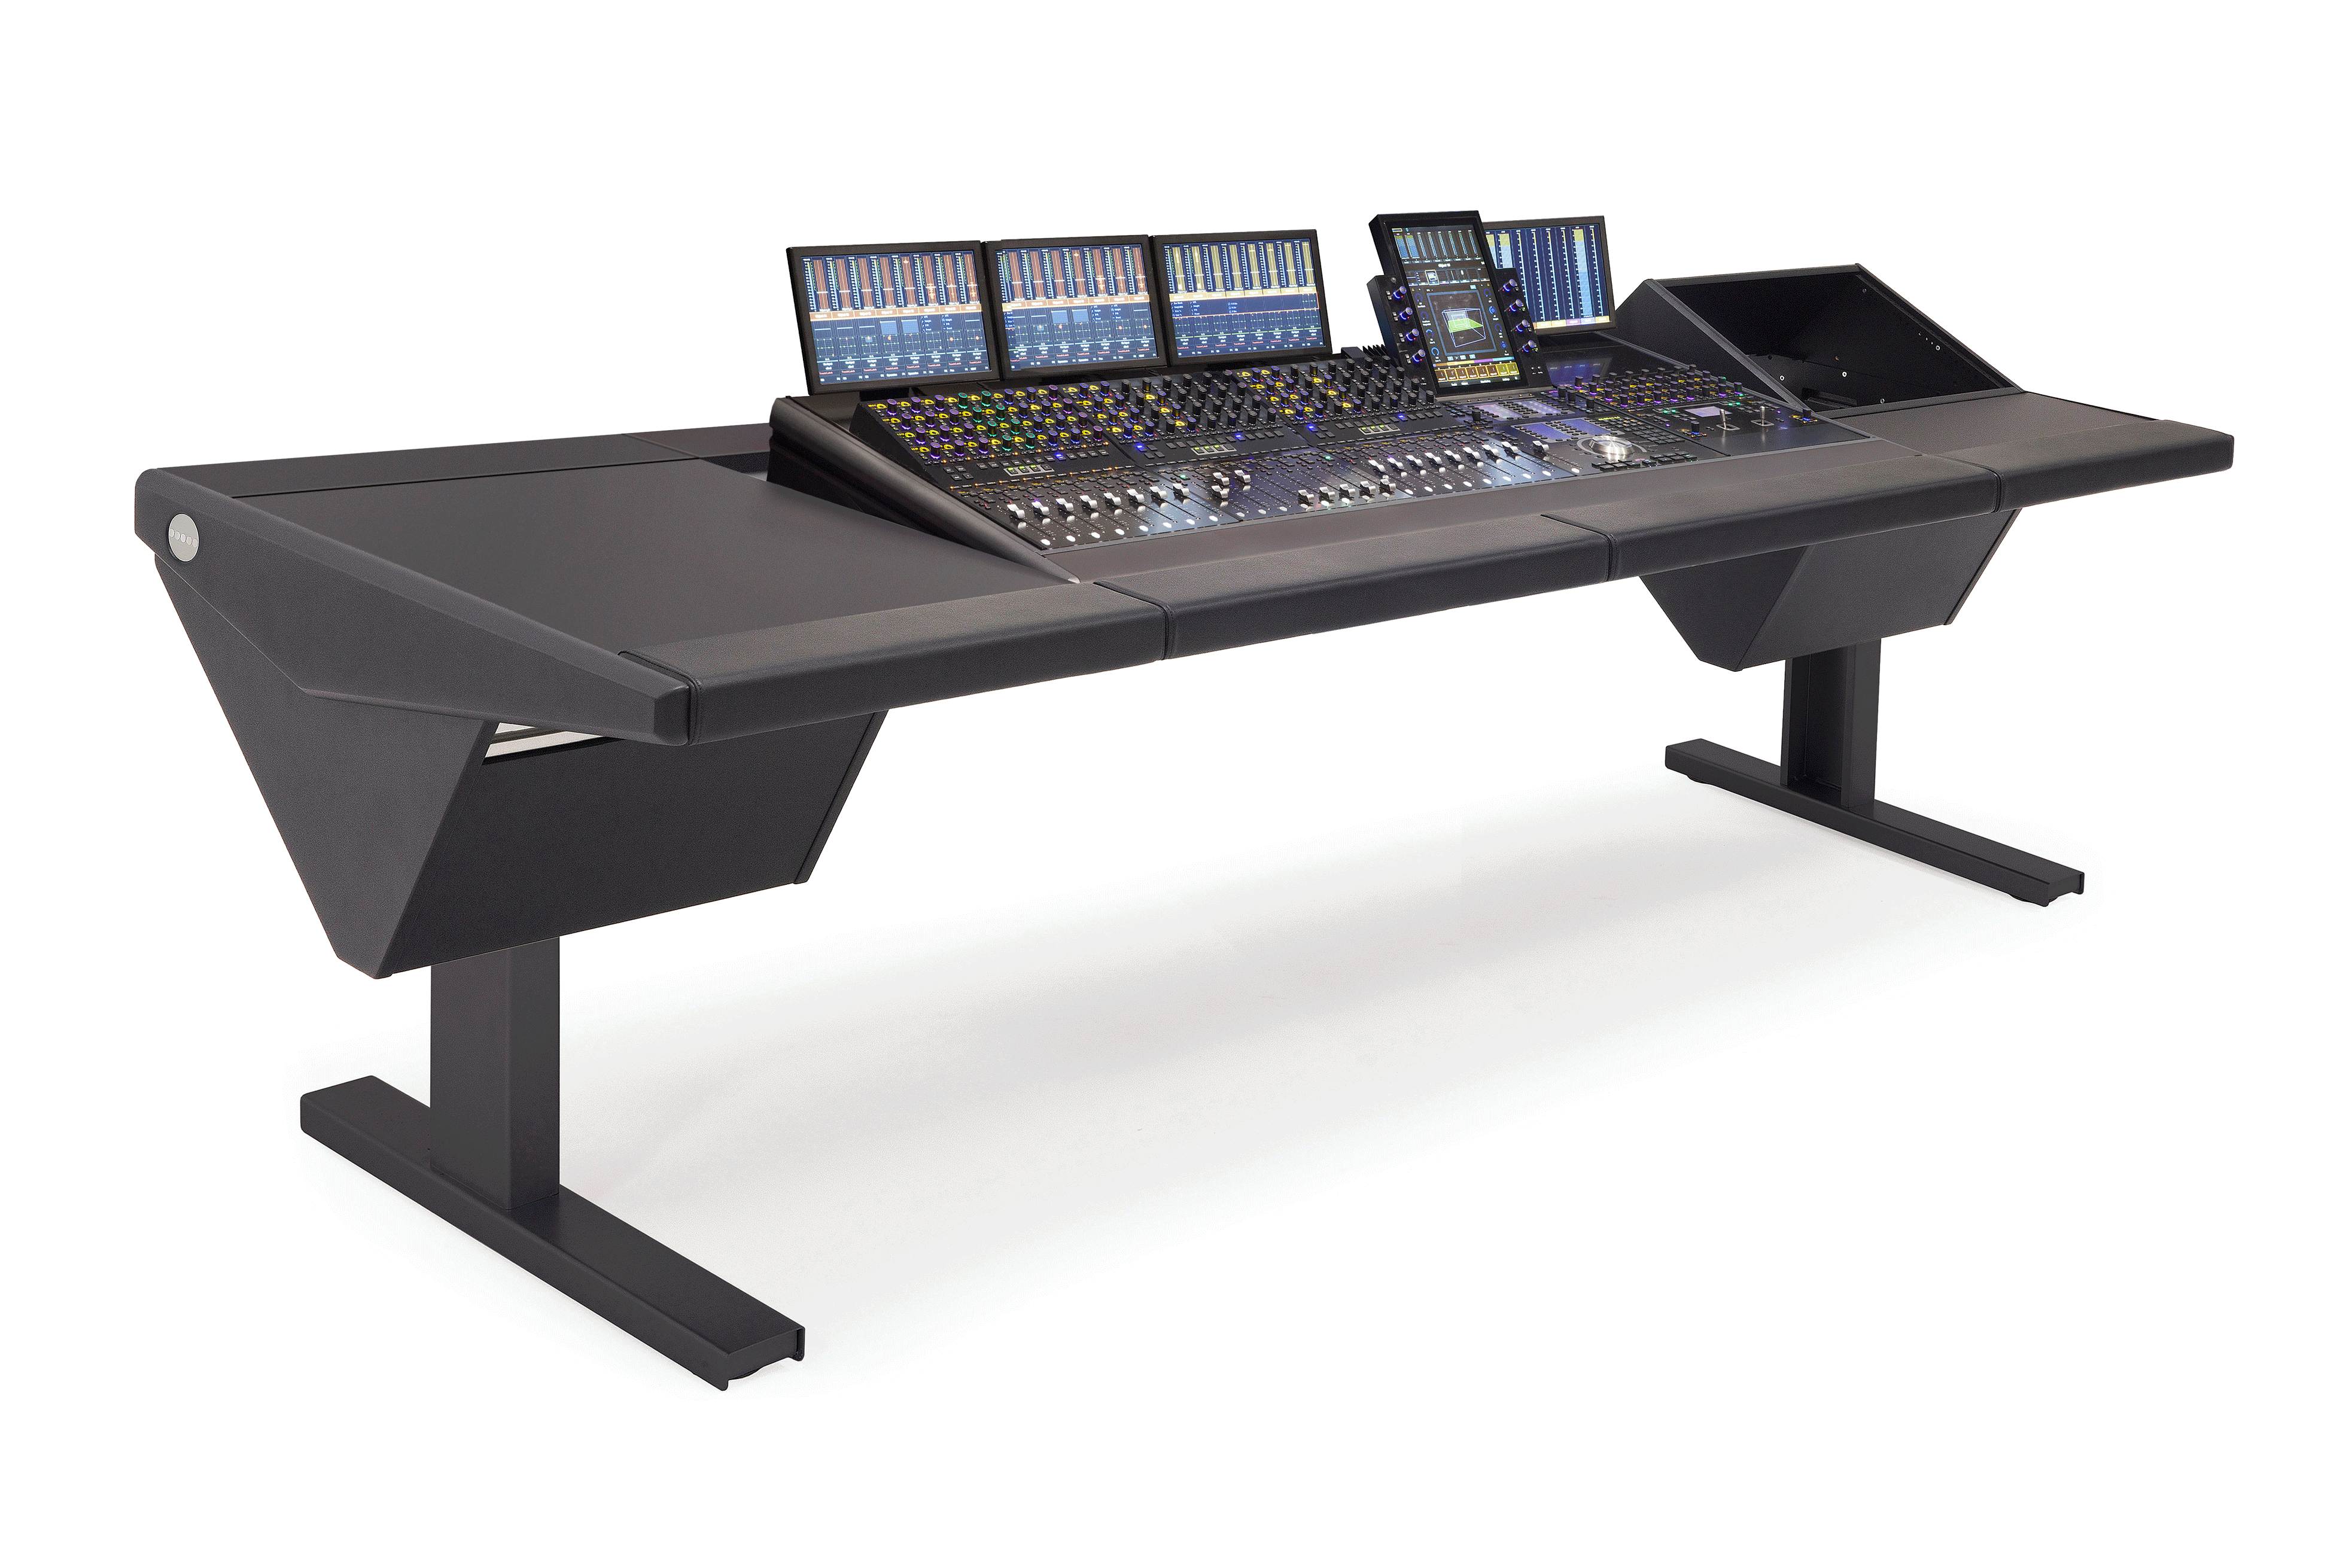 S4 - 5 Foot Wide Base System with Desk (L) and Rack (R)